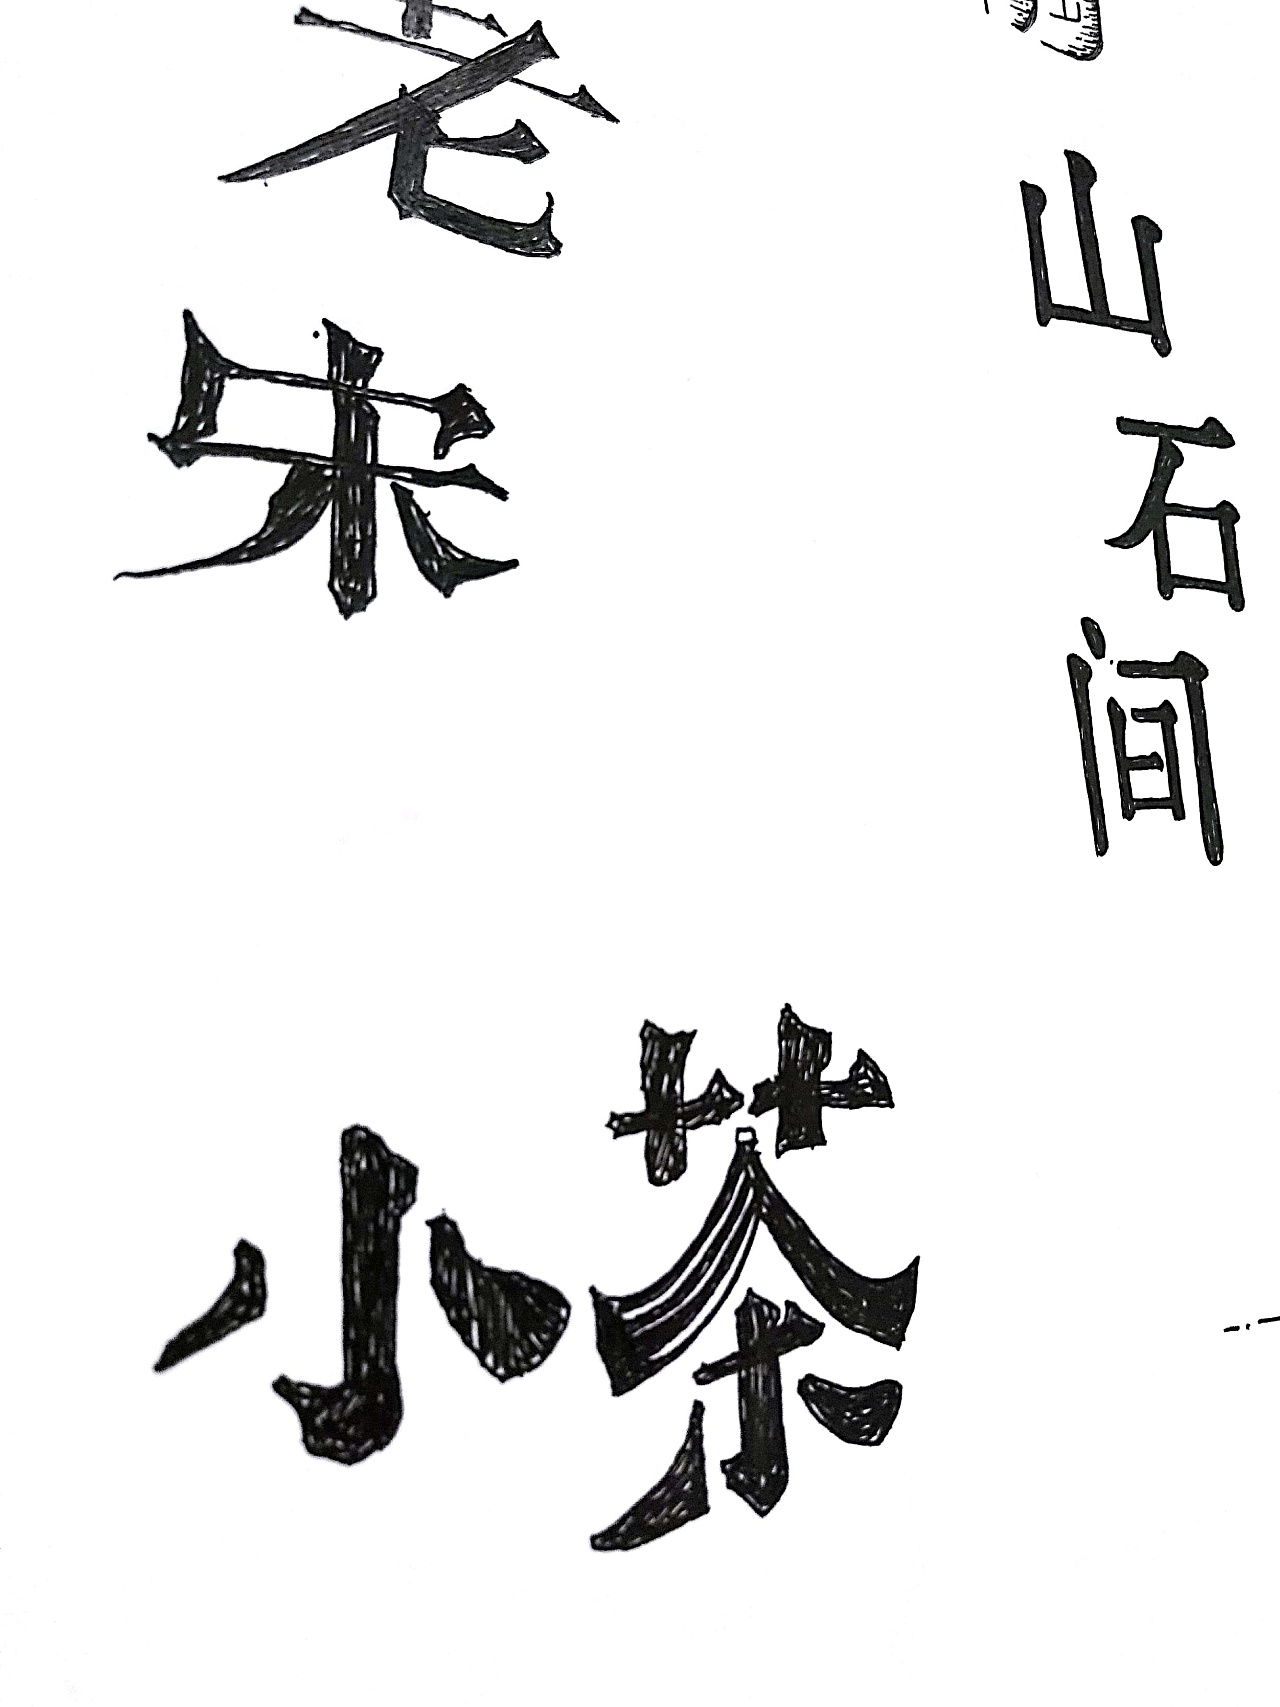 chinesefontdesign.com 2018 04 04 07 29 58 439126 18P Wonderful handwritten art chinese font design